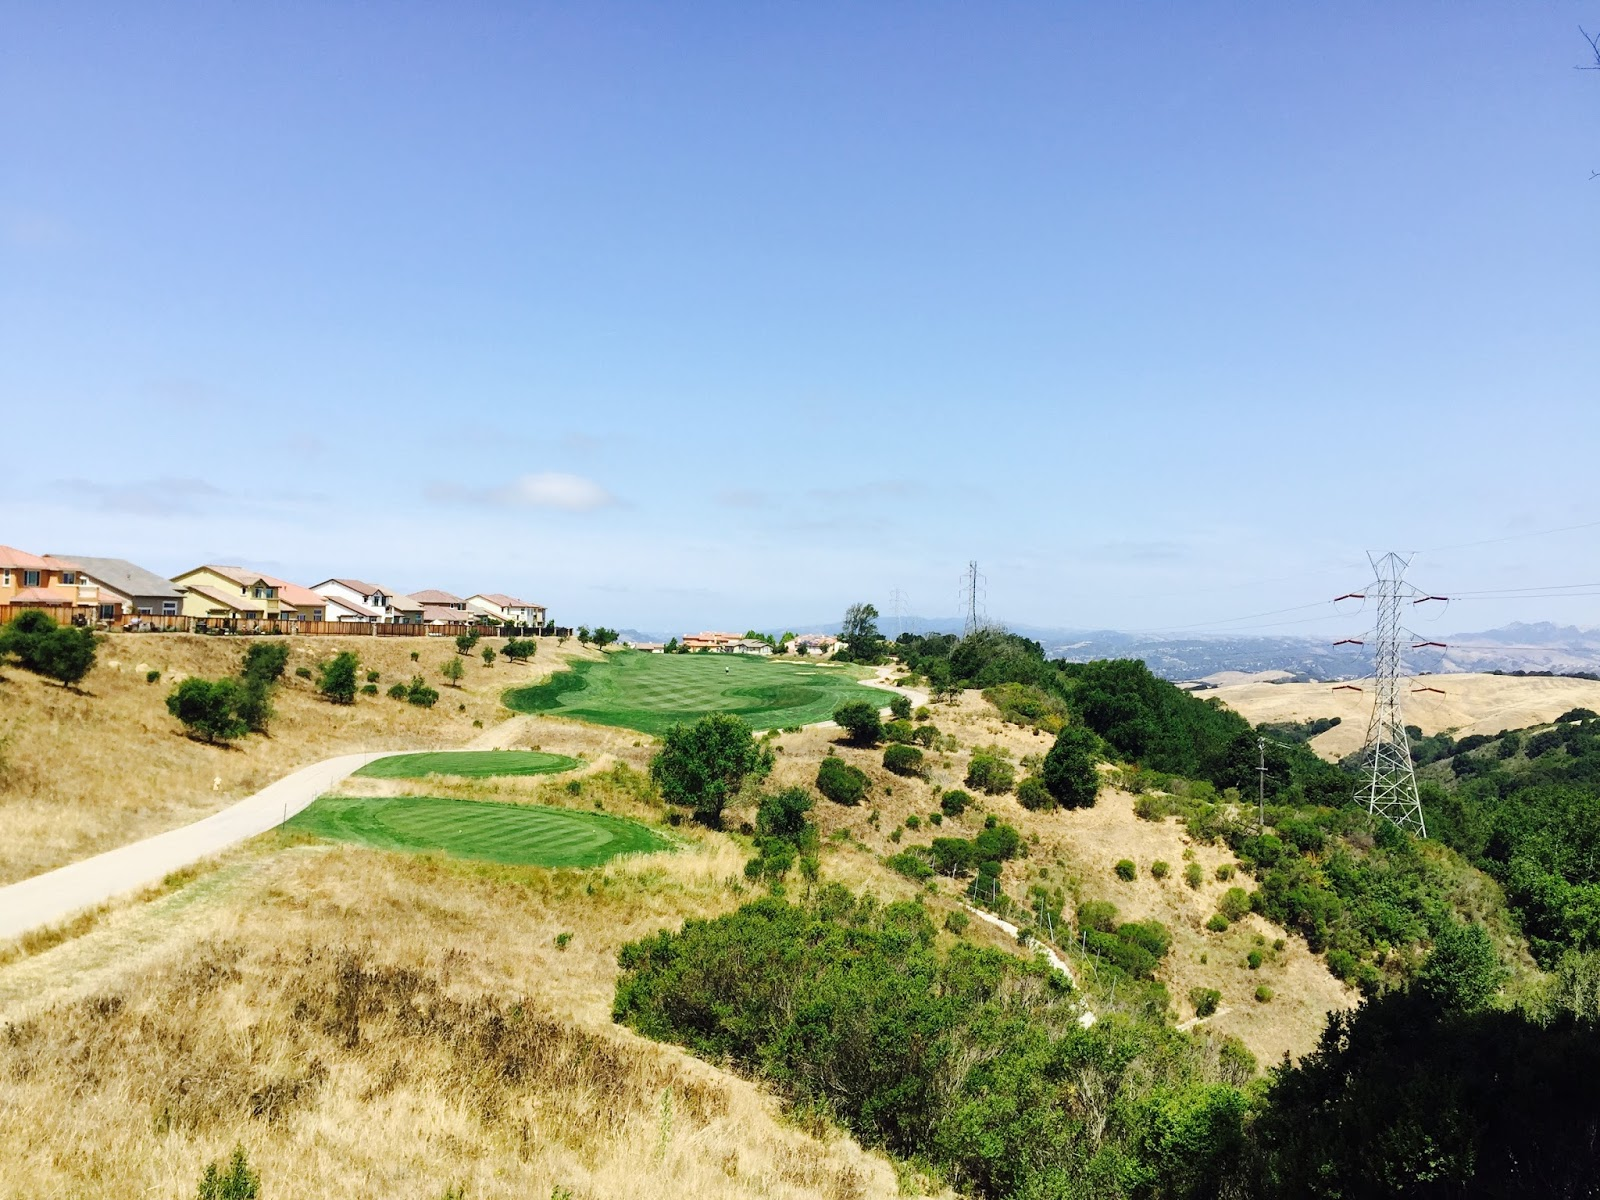 A view down the fairway of the 2nd hole from the tee box.